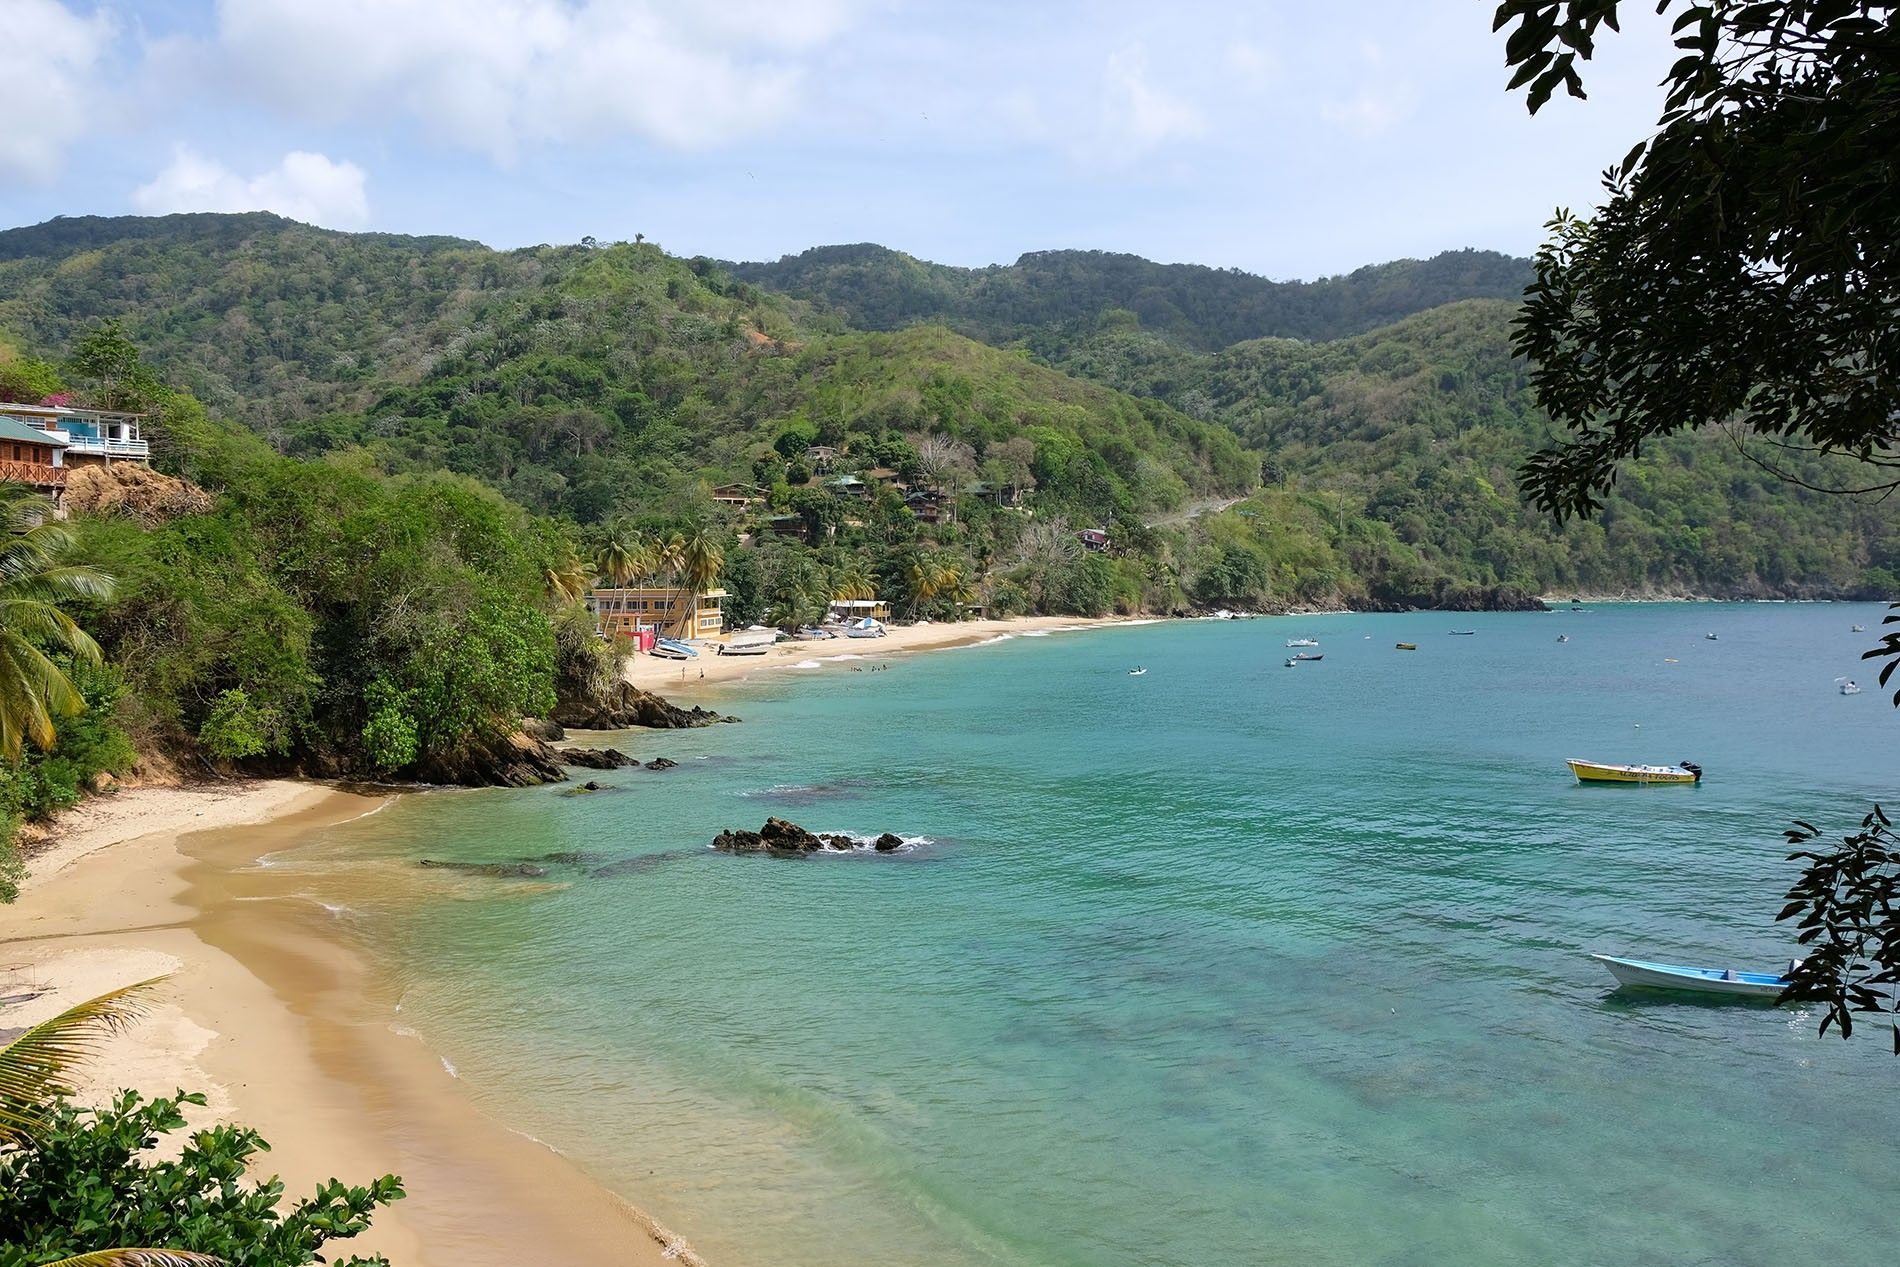 It's possible to fall in love with a different beach every day in Tobago.